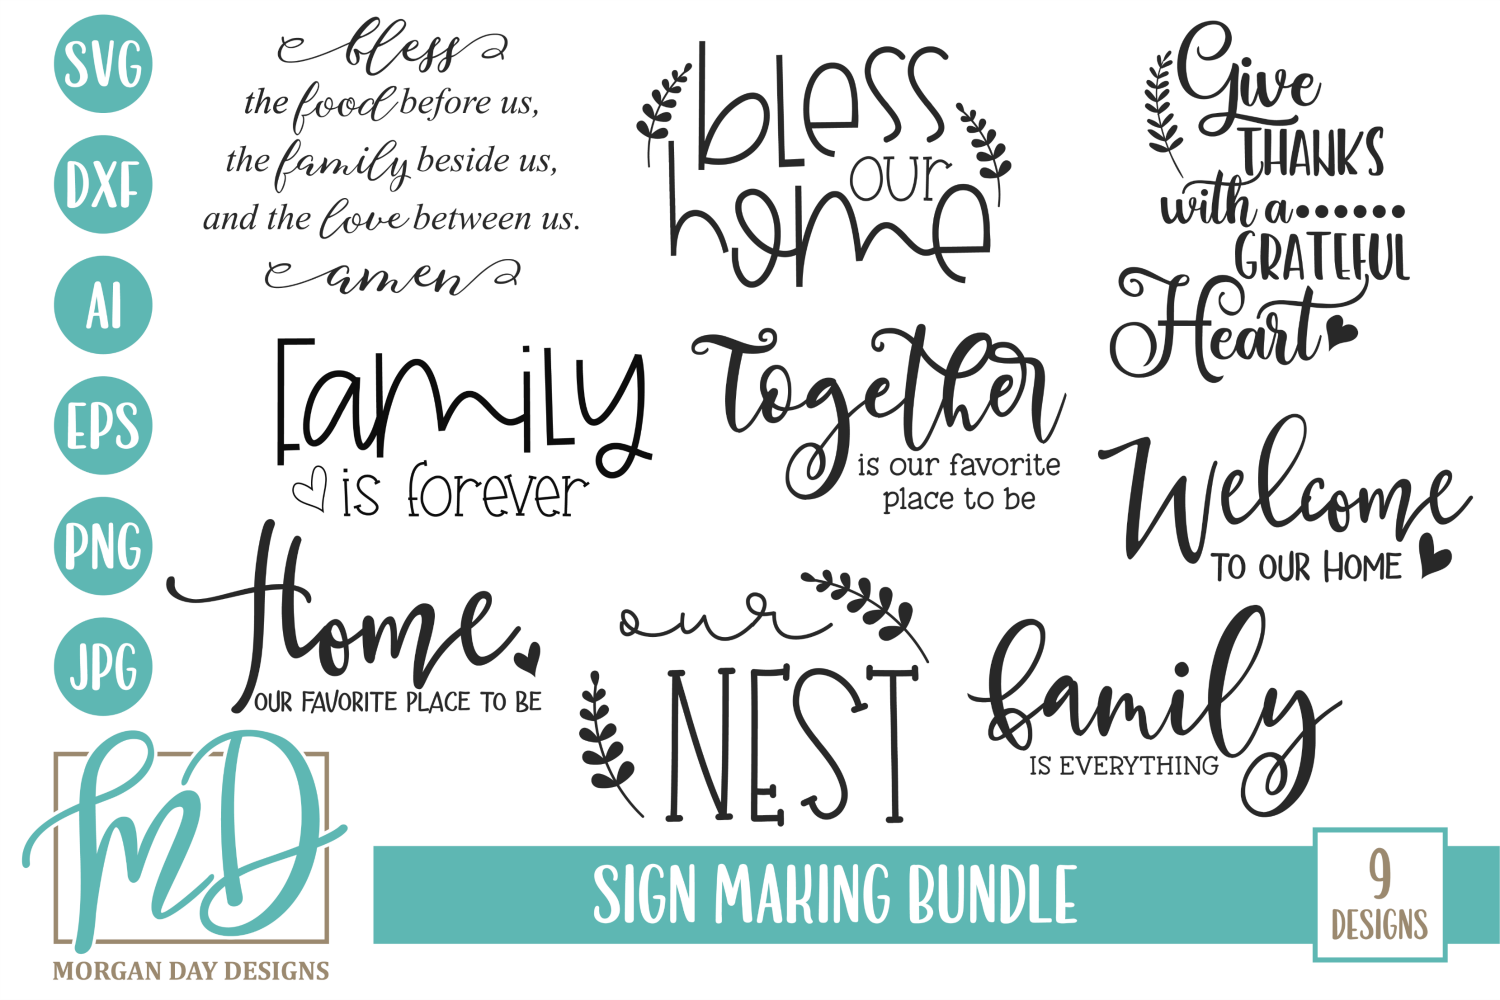 Download Free Sign Making Bundle Graphic By Morgan Day Designs Creative Fabrica for Cricut Explore, Silhouette and other cutting machines.